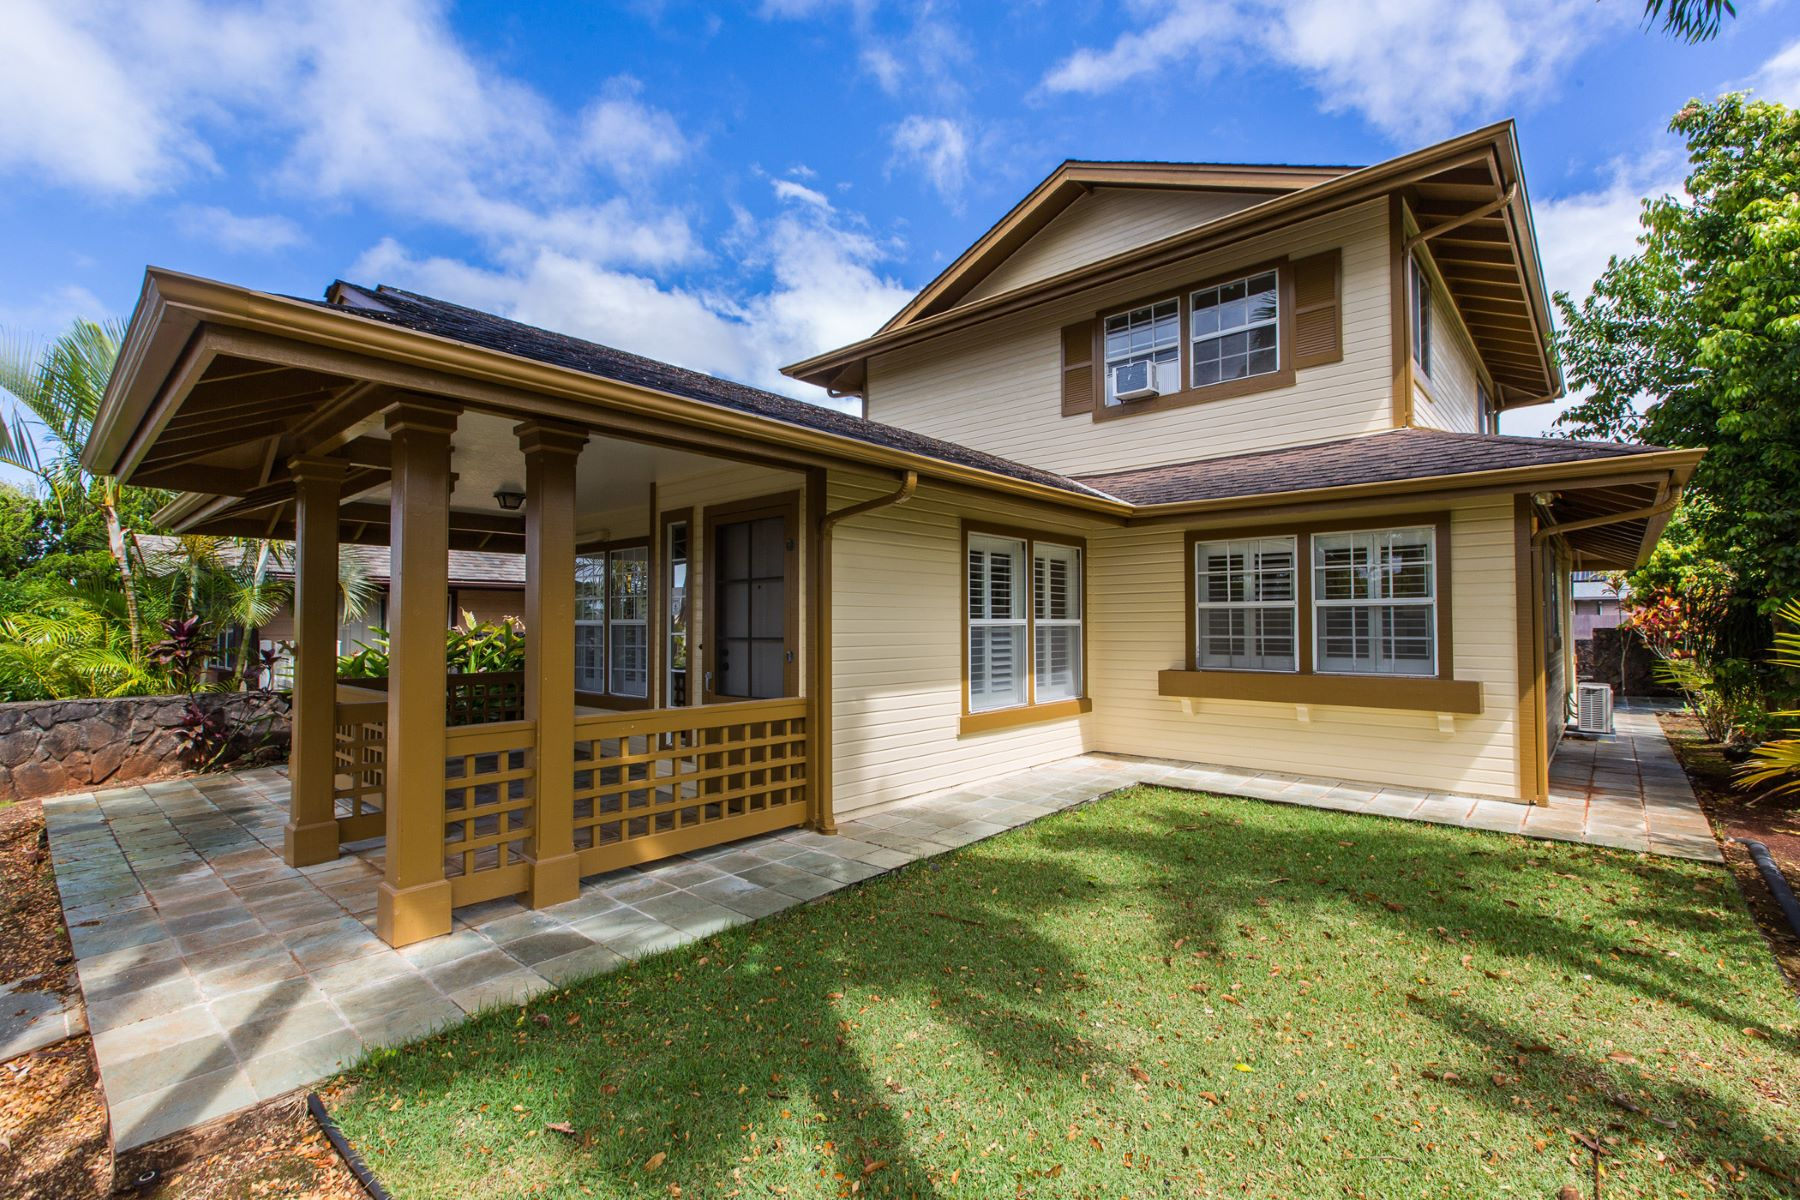 Single Family Home for Sale at Mililani's Finest 95-1003 Puulu Street Mililani, Hawaii 96789 United States